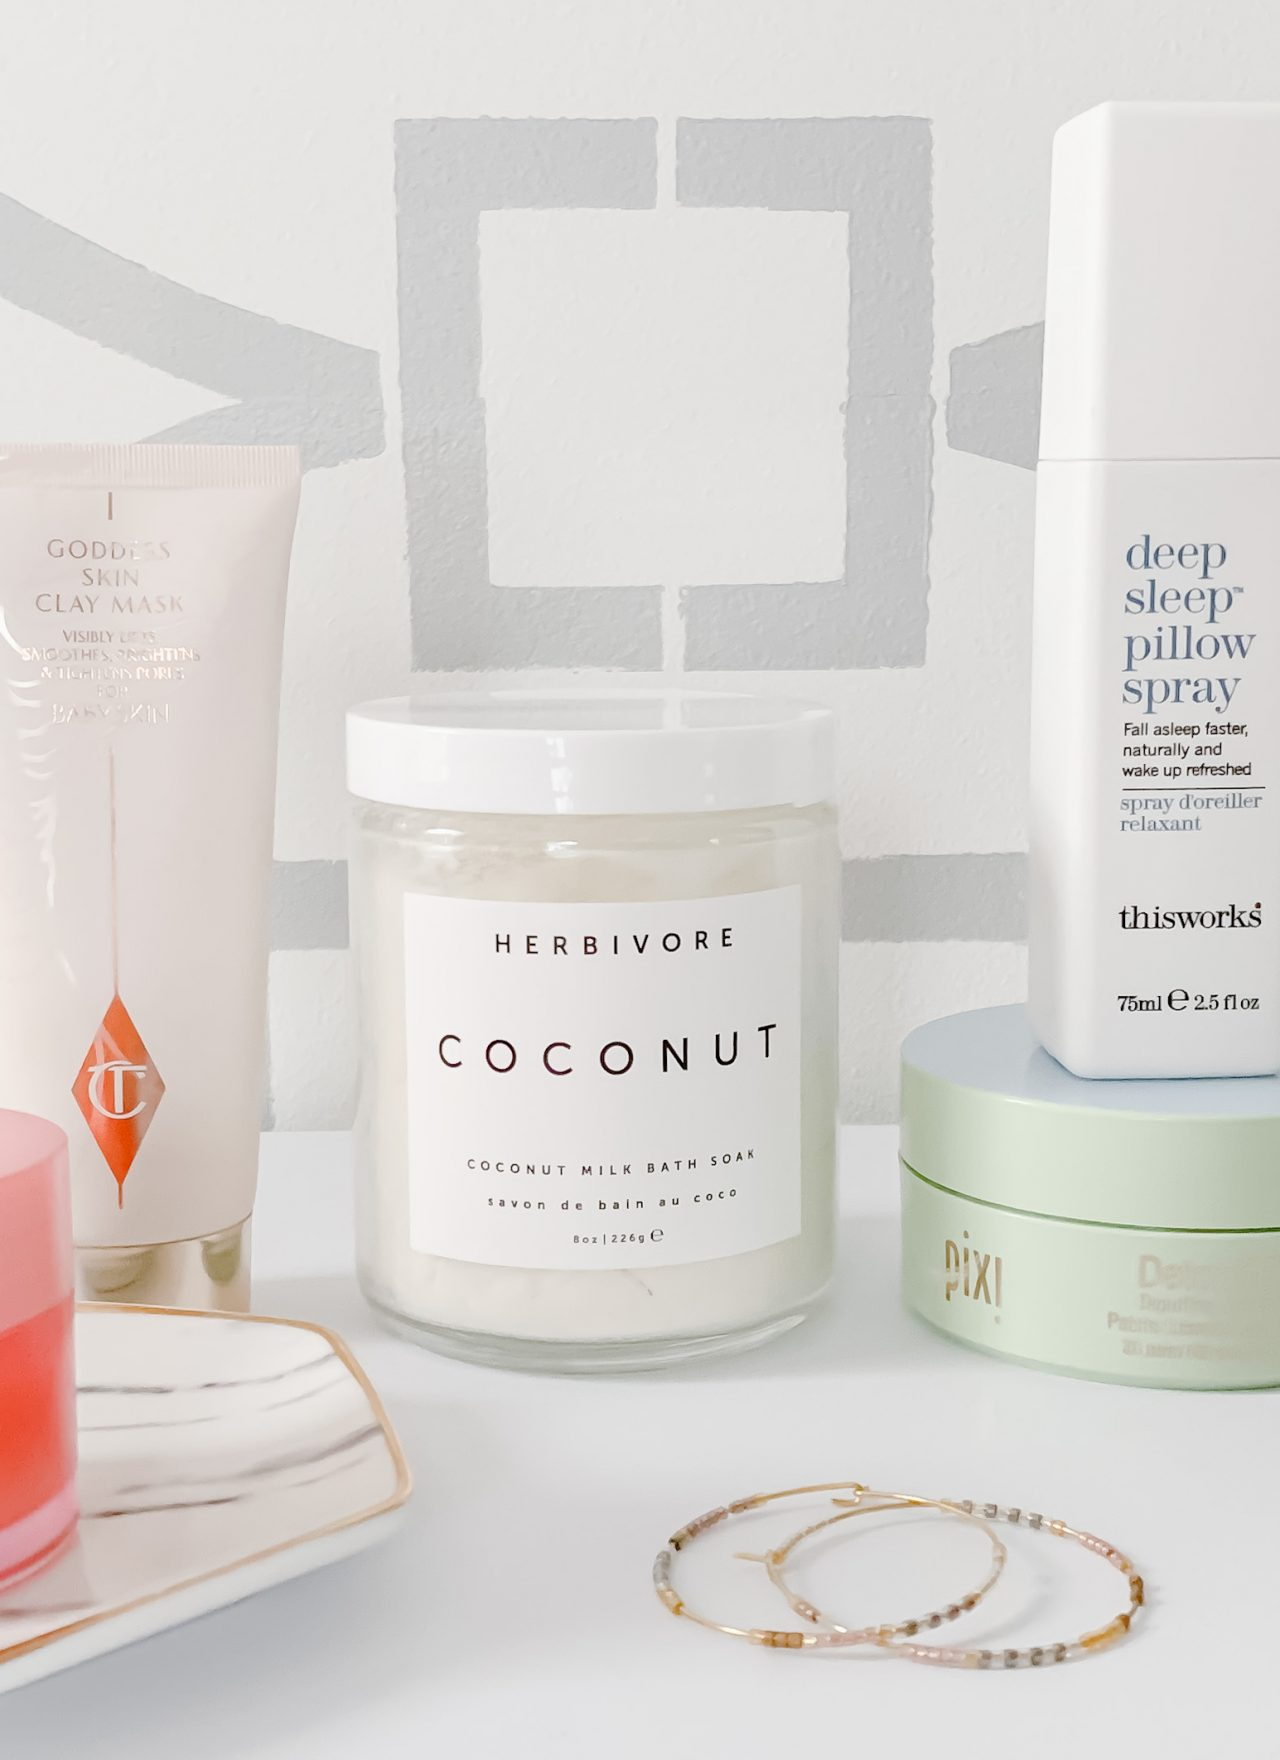 MY FAVORITE SELF CARE BEAUTY PRODUCTS | I am sharing a few of my favorite self care beauty products that have become part of my beauty routine, including my favorite budget friendly pajamas, drugstore eye patches and a detergent that smells so good and will make your home smell like a fancy hotel. #selfcare